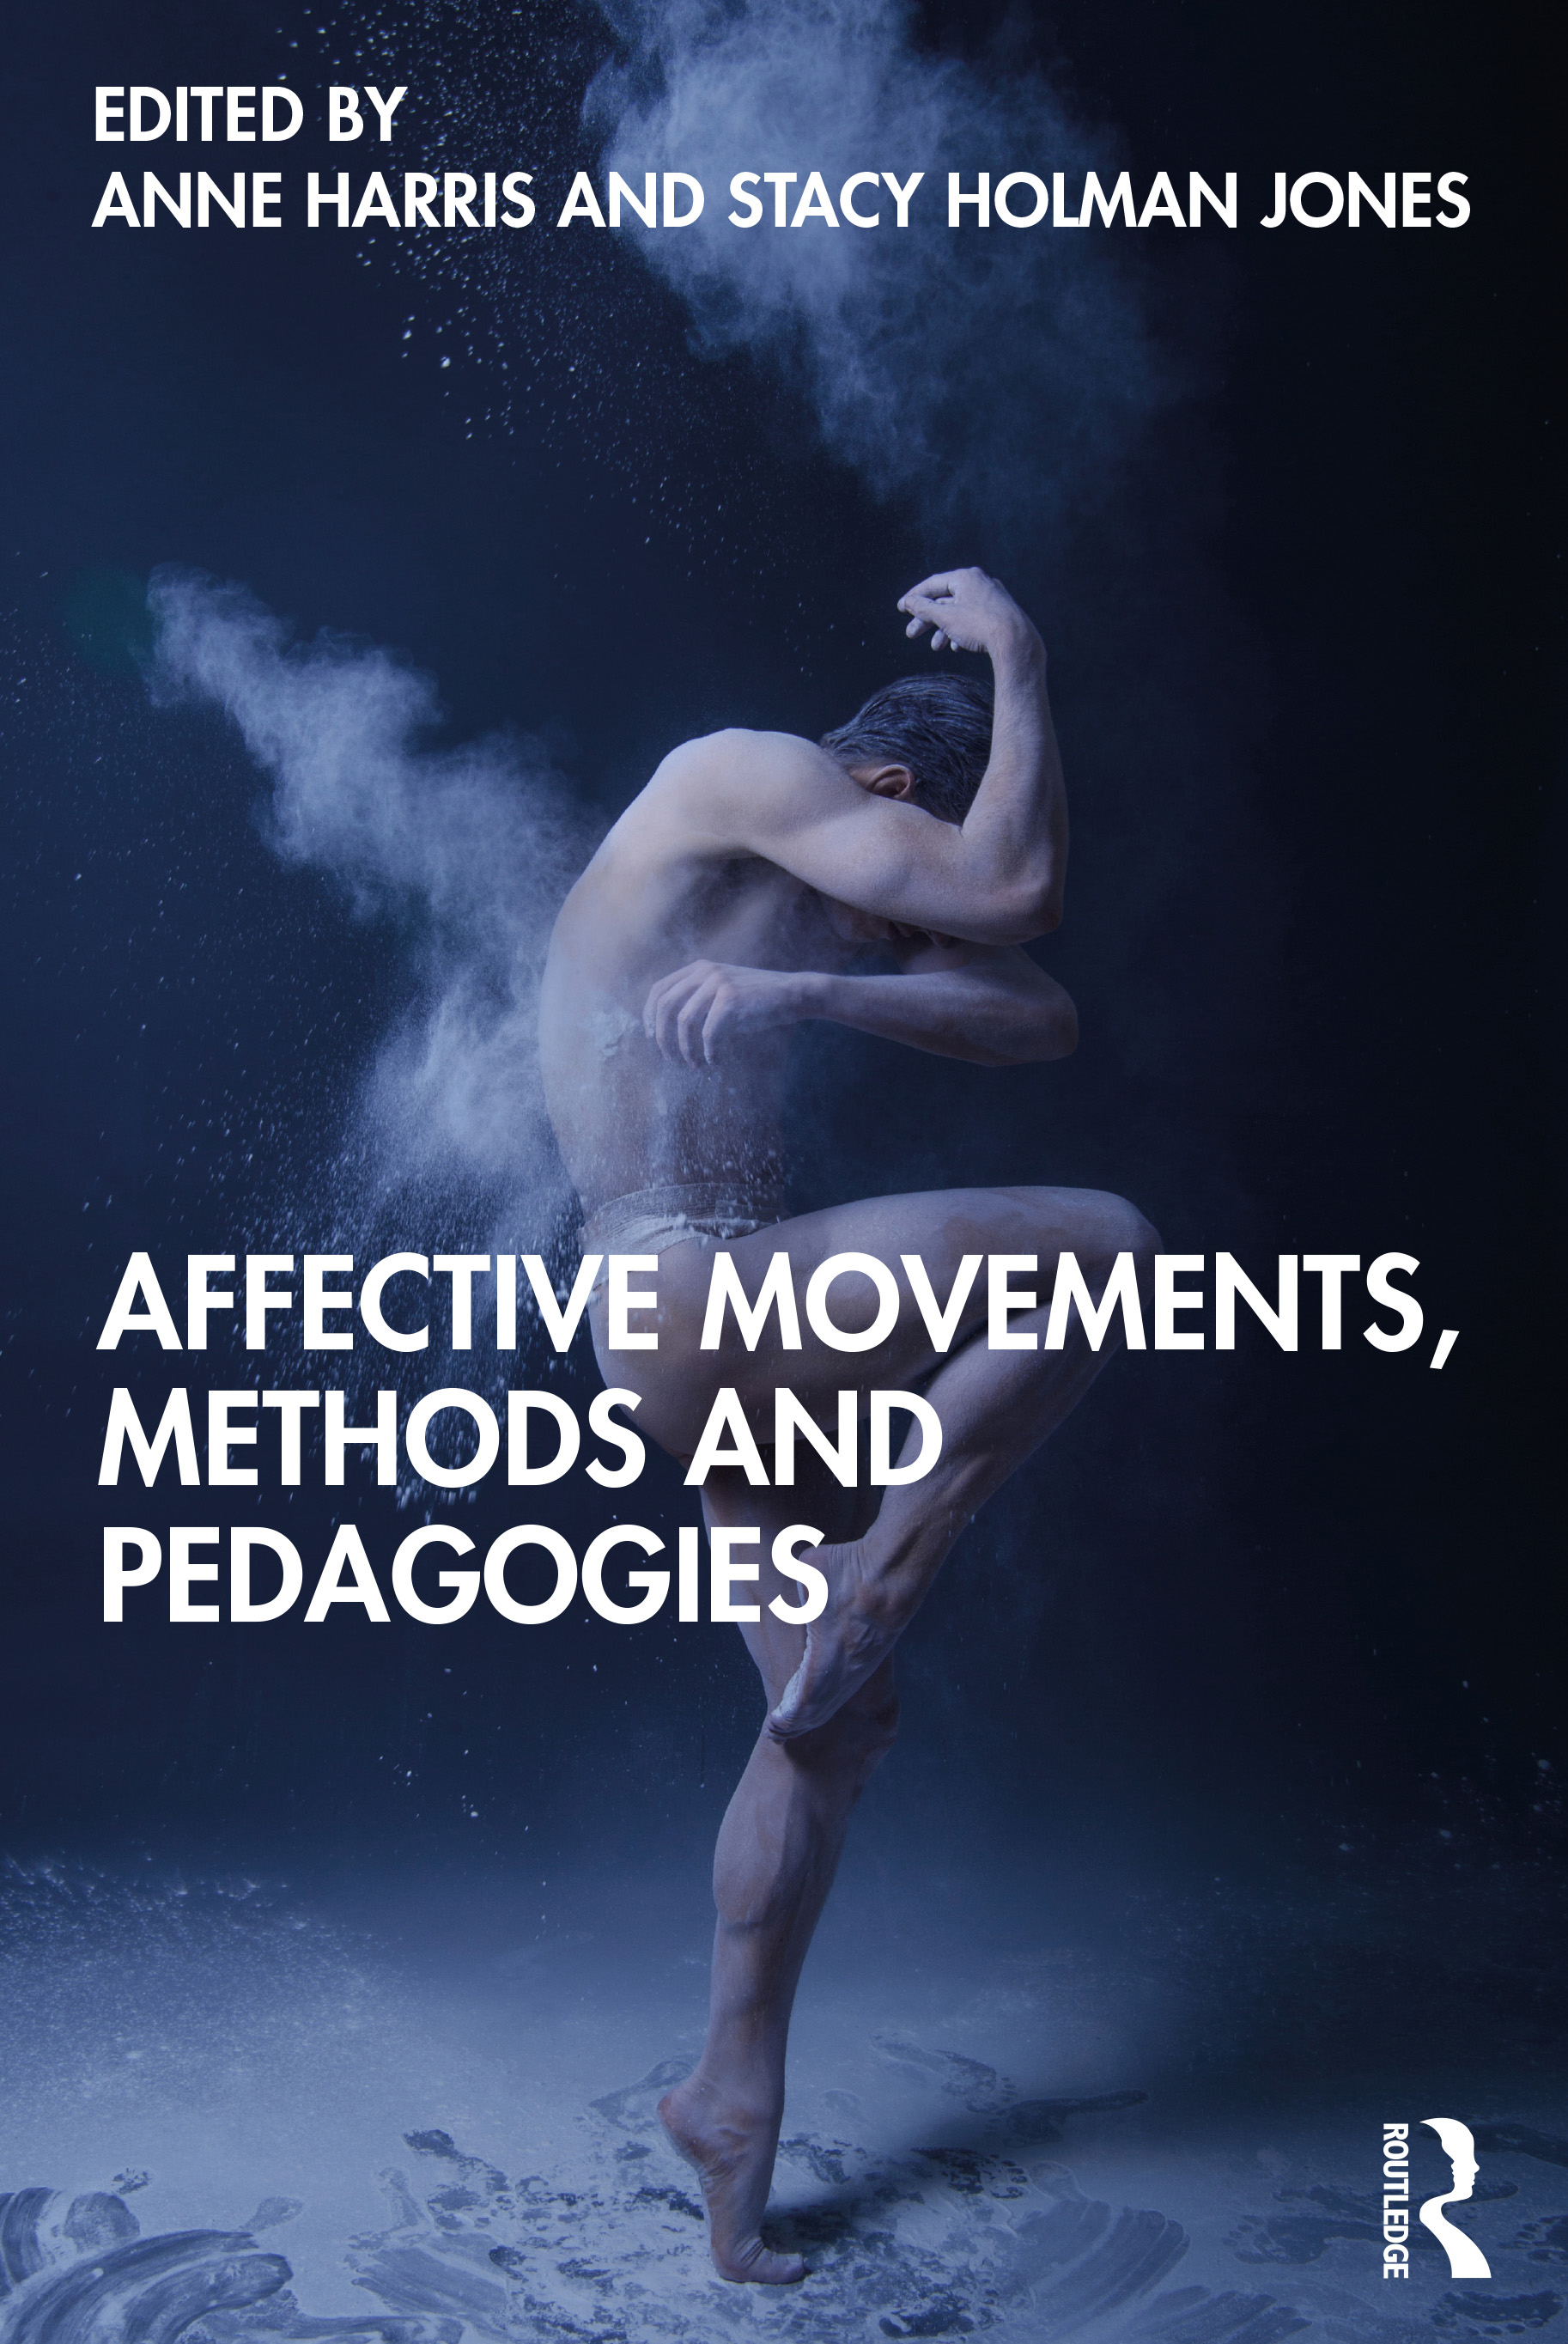 Affective Movements, Methods and Pedagogies